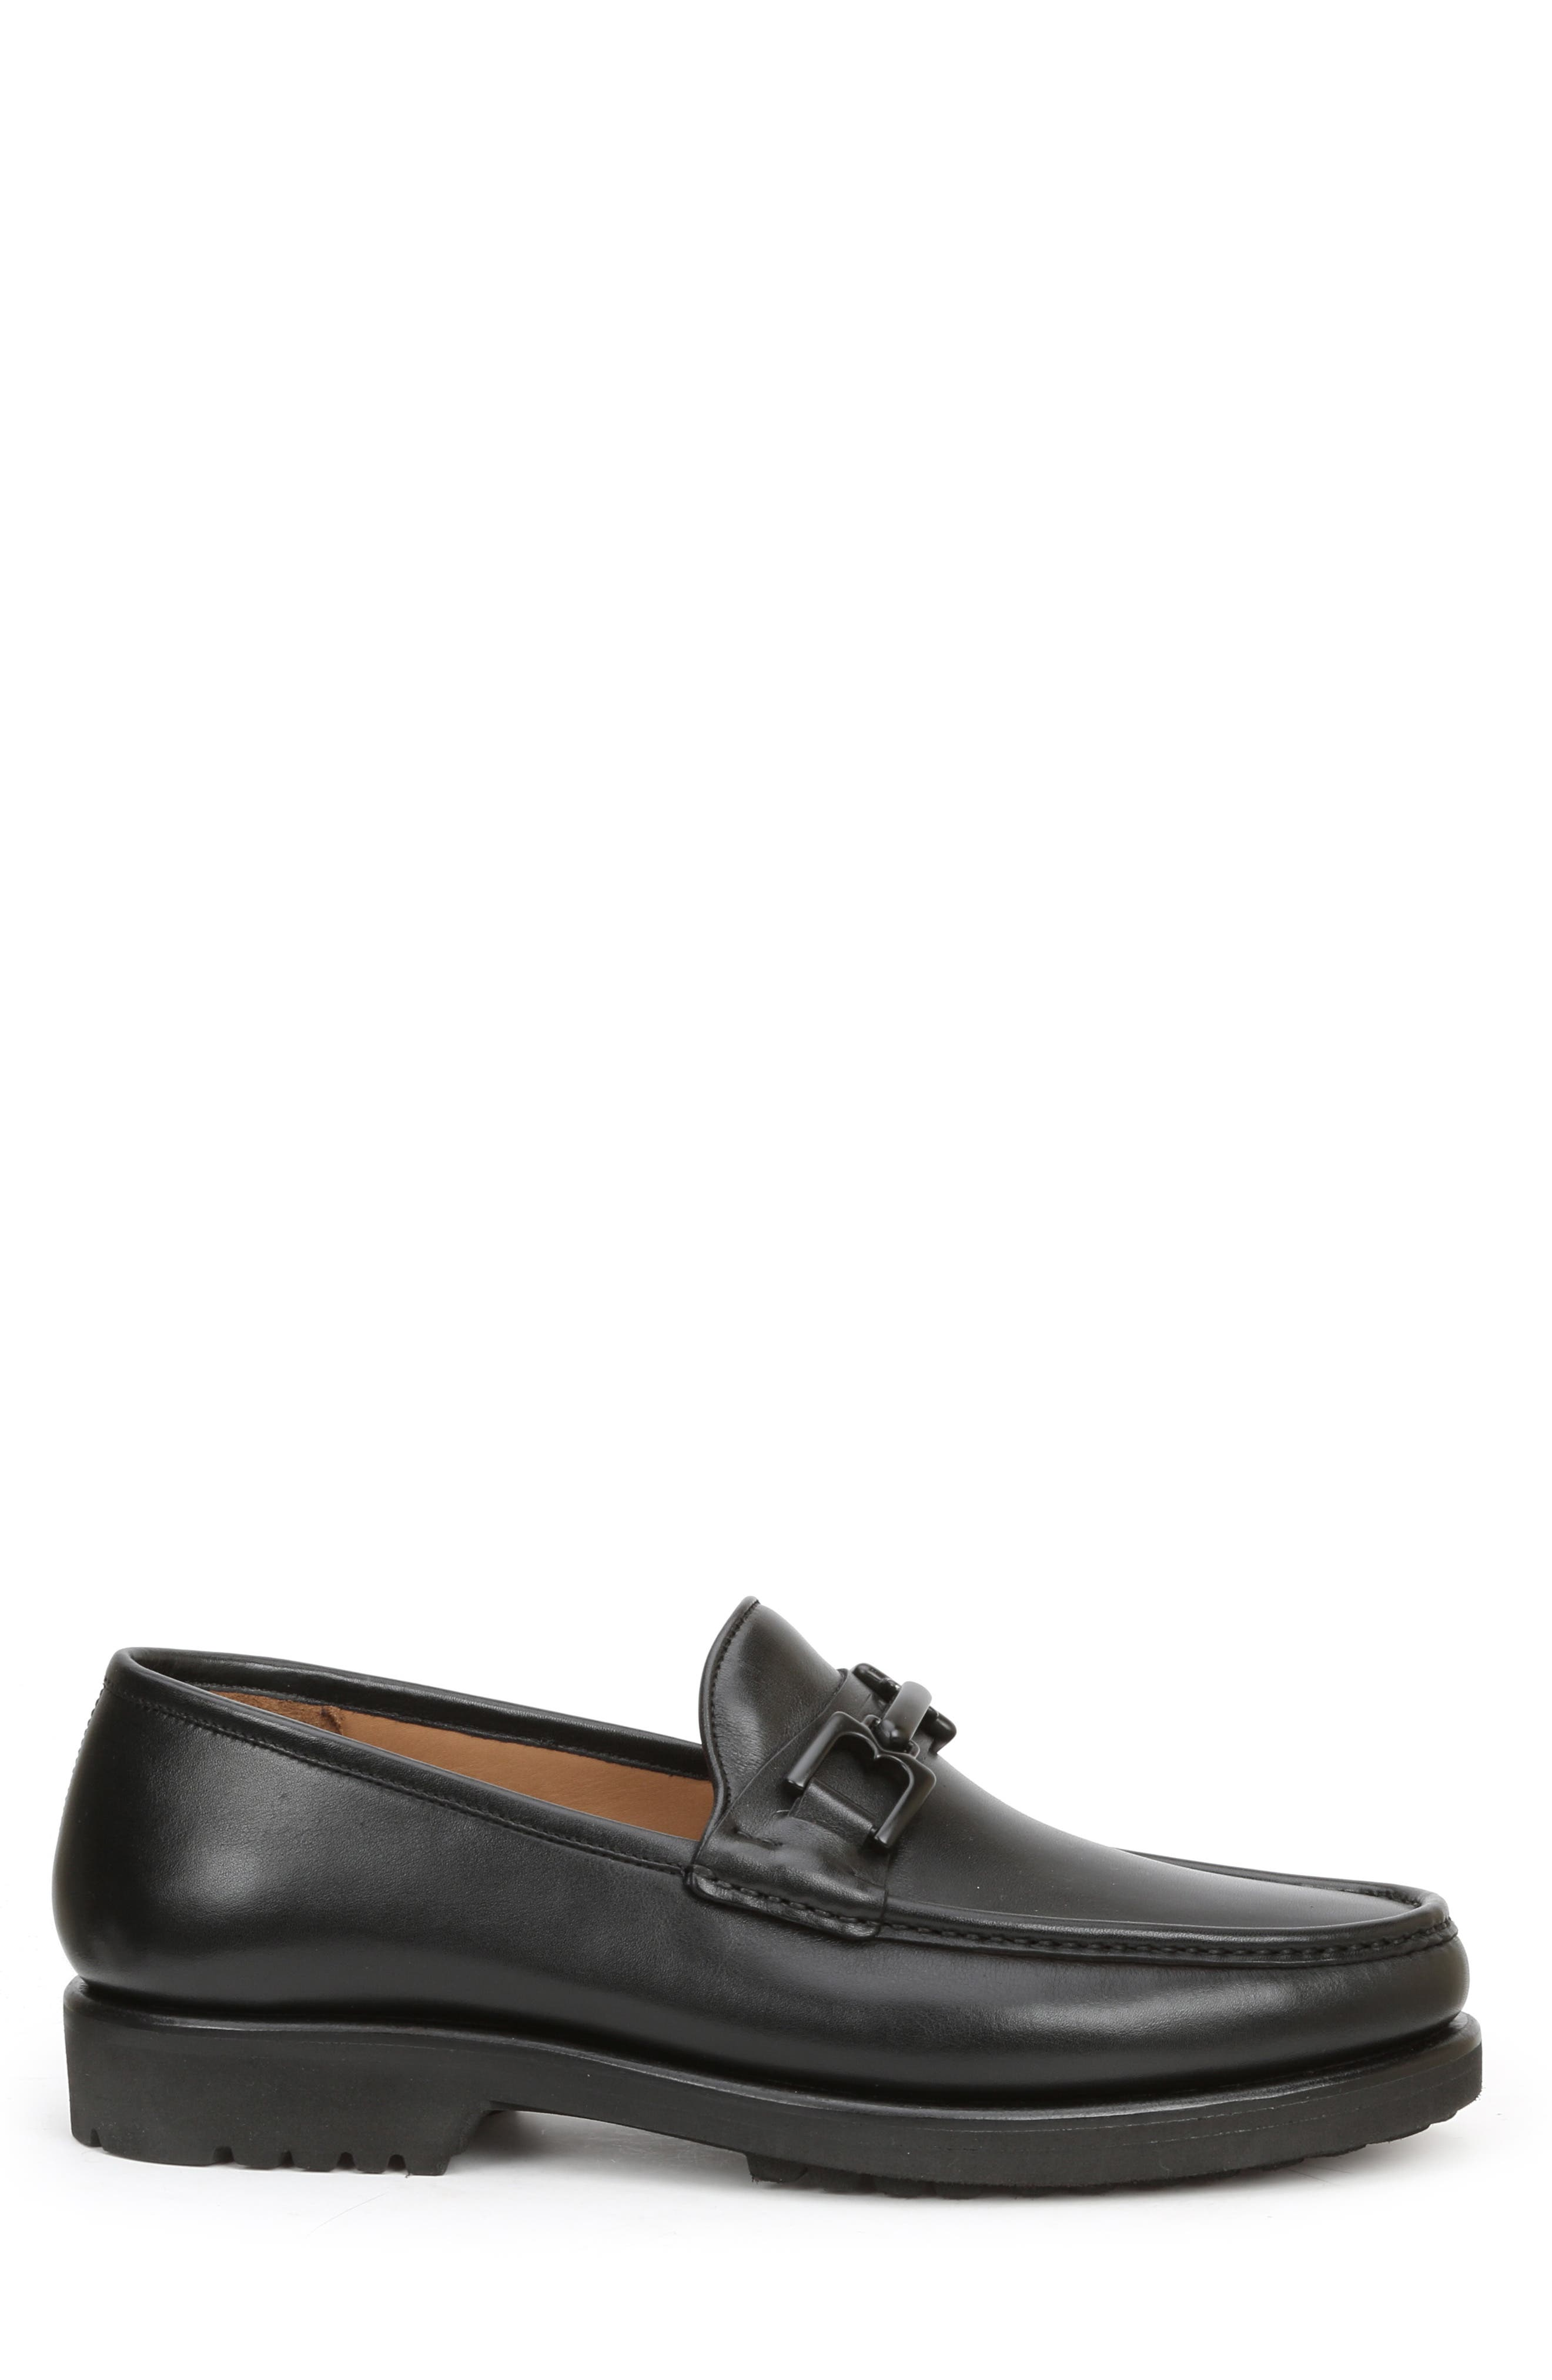 Falcone Lugged Bit Loafer,                             Alternate thumbnail 3, color,                             BLACK